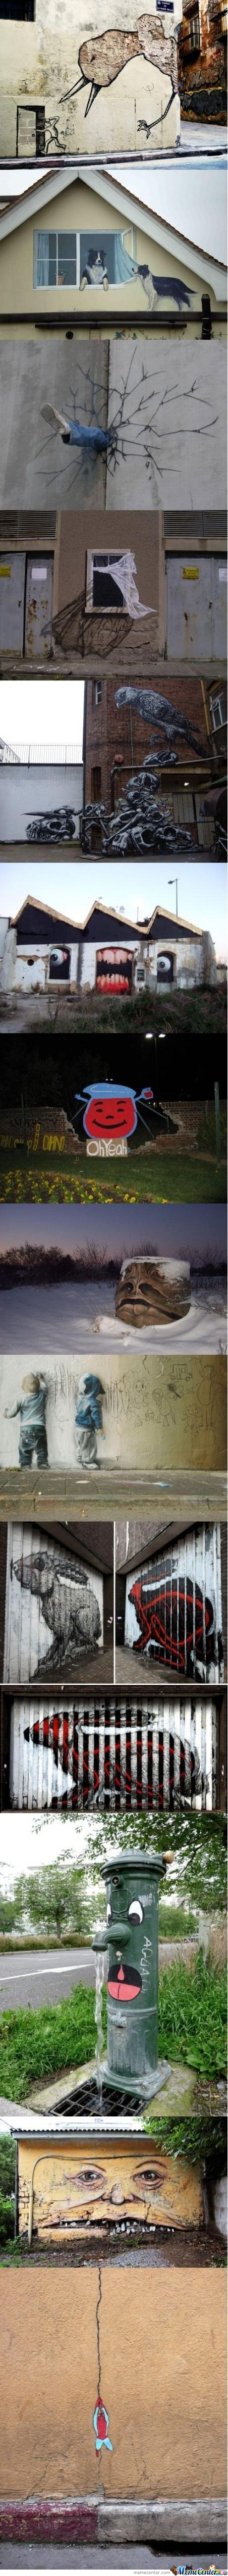 Just Awesome Street Art